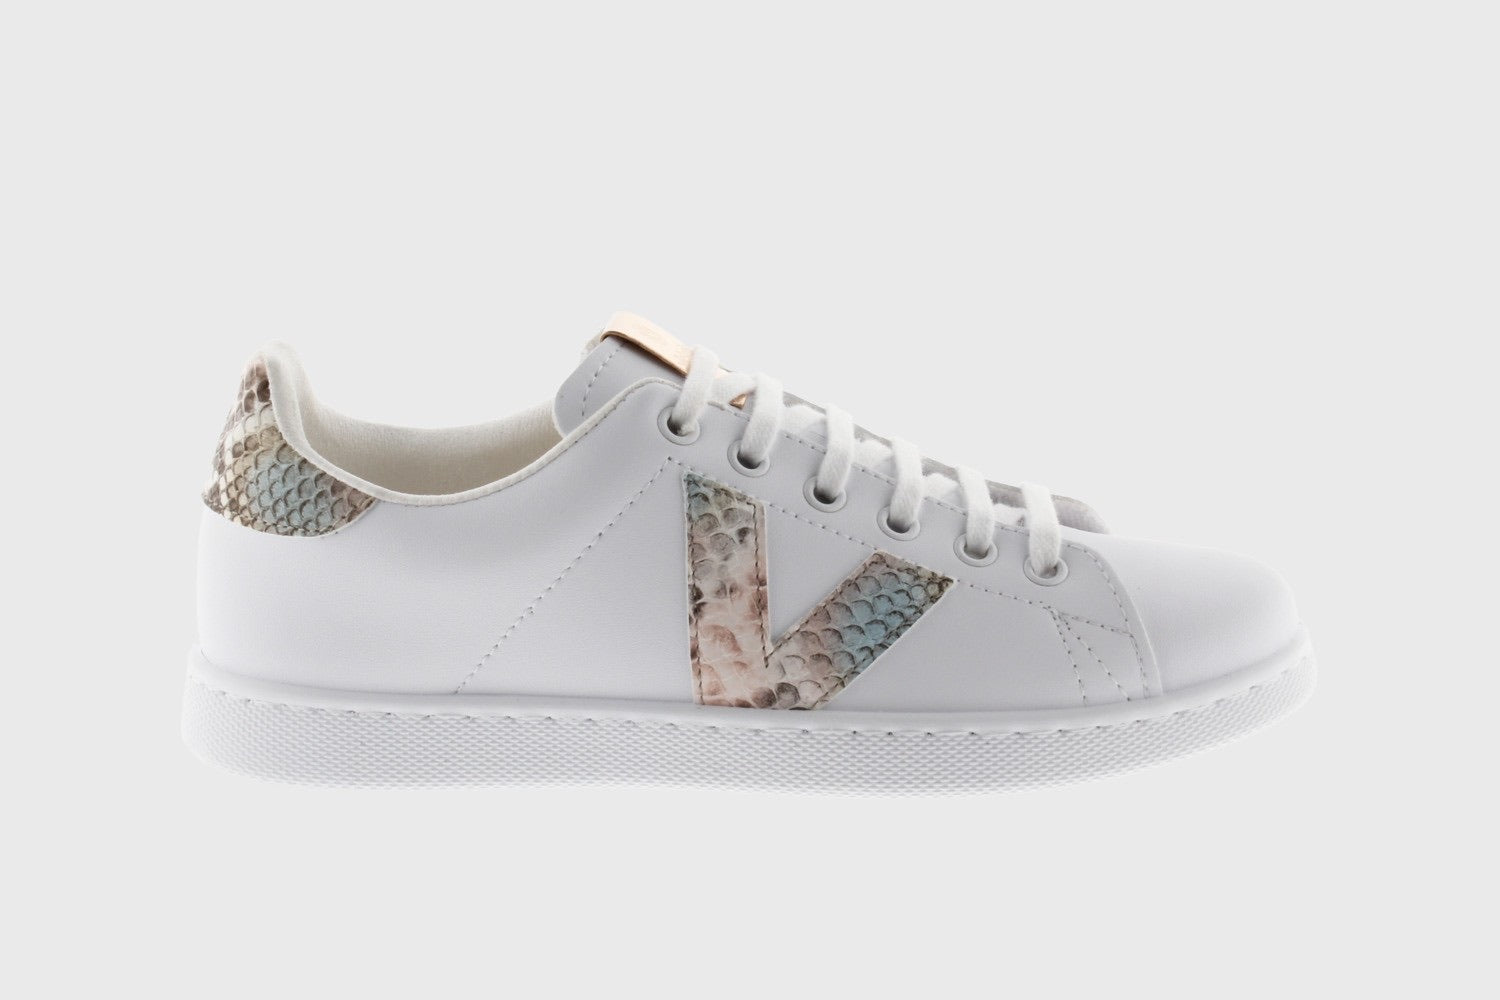 Victoria Snakeskin Print Tennis Shoes - nude - 125225